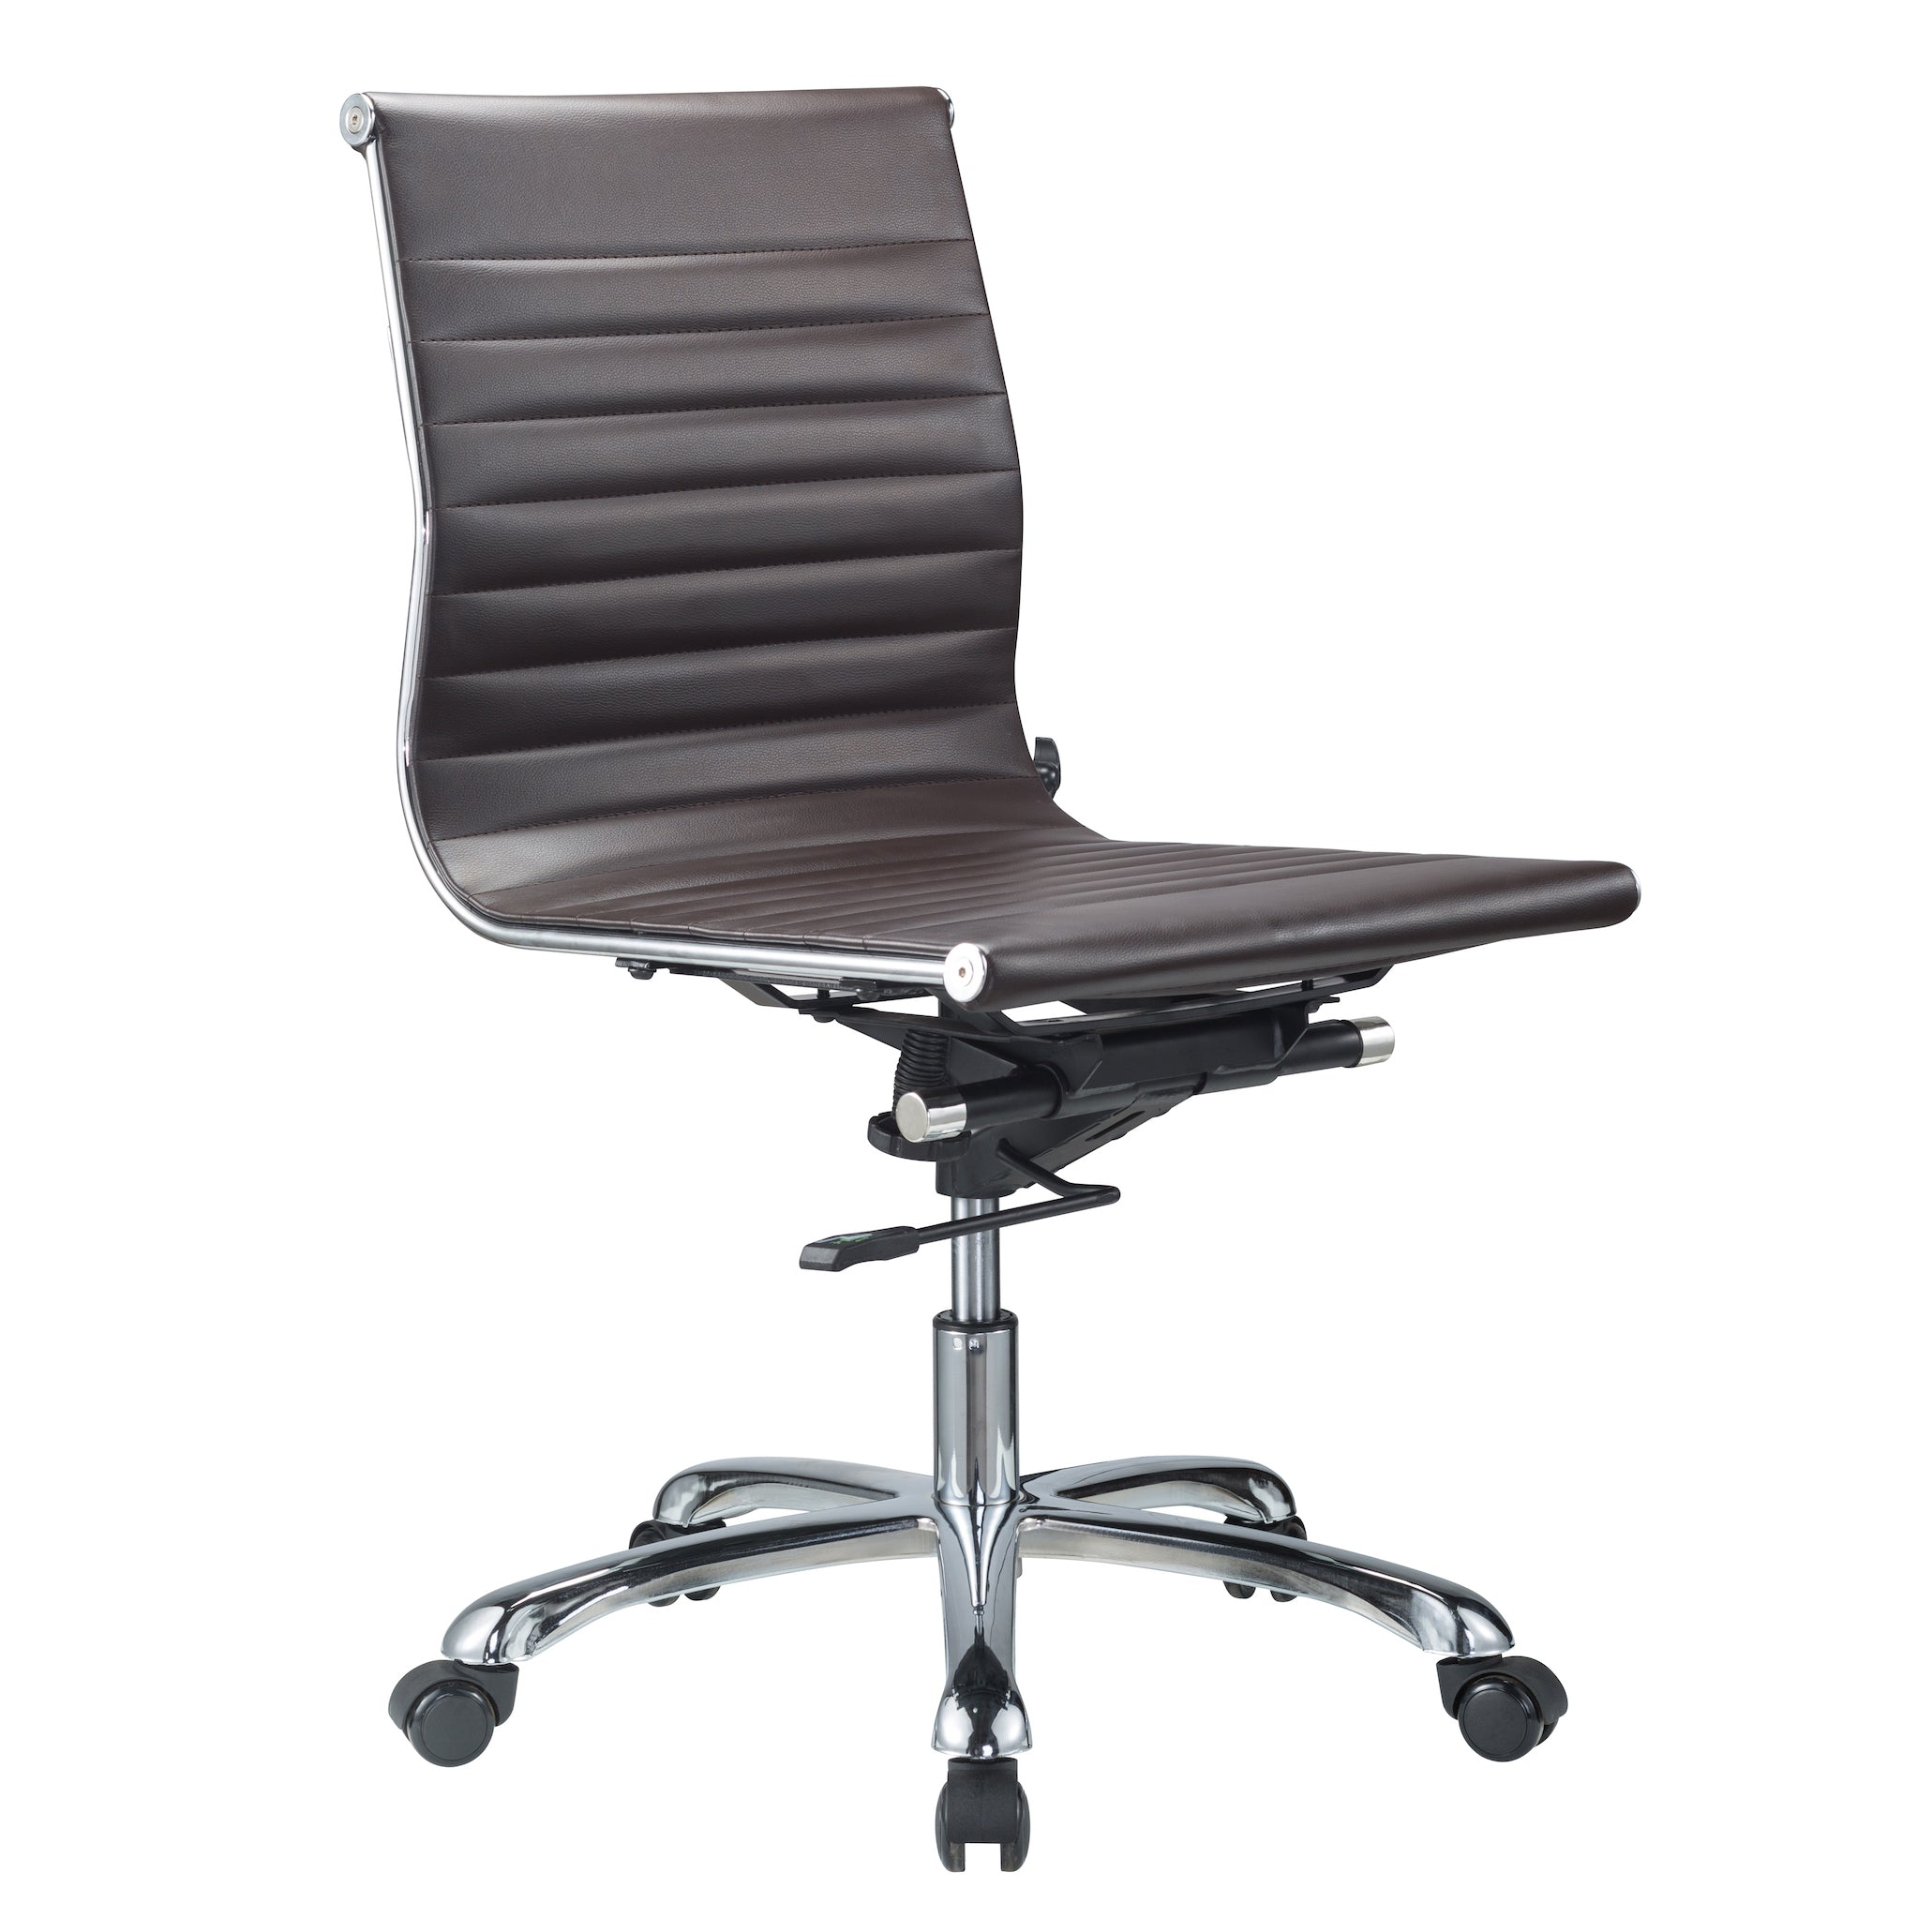 Bikey Nova Collection Mid Back Armless Leather Conference fice